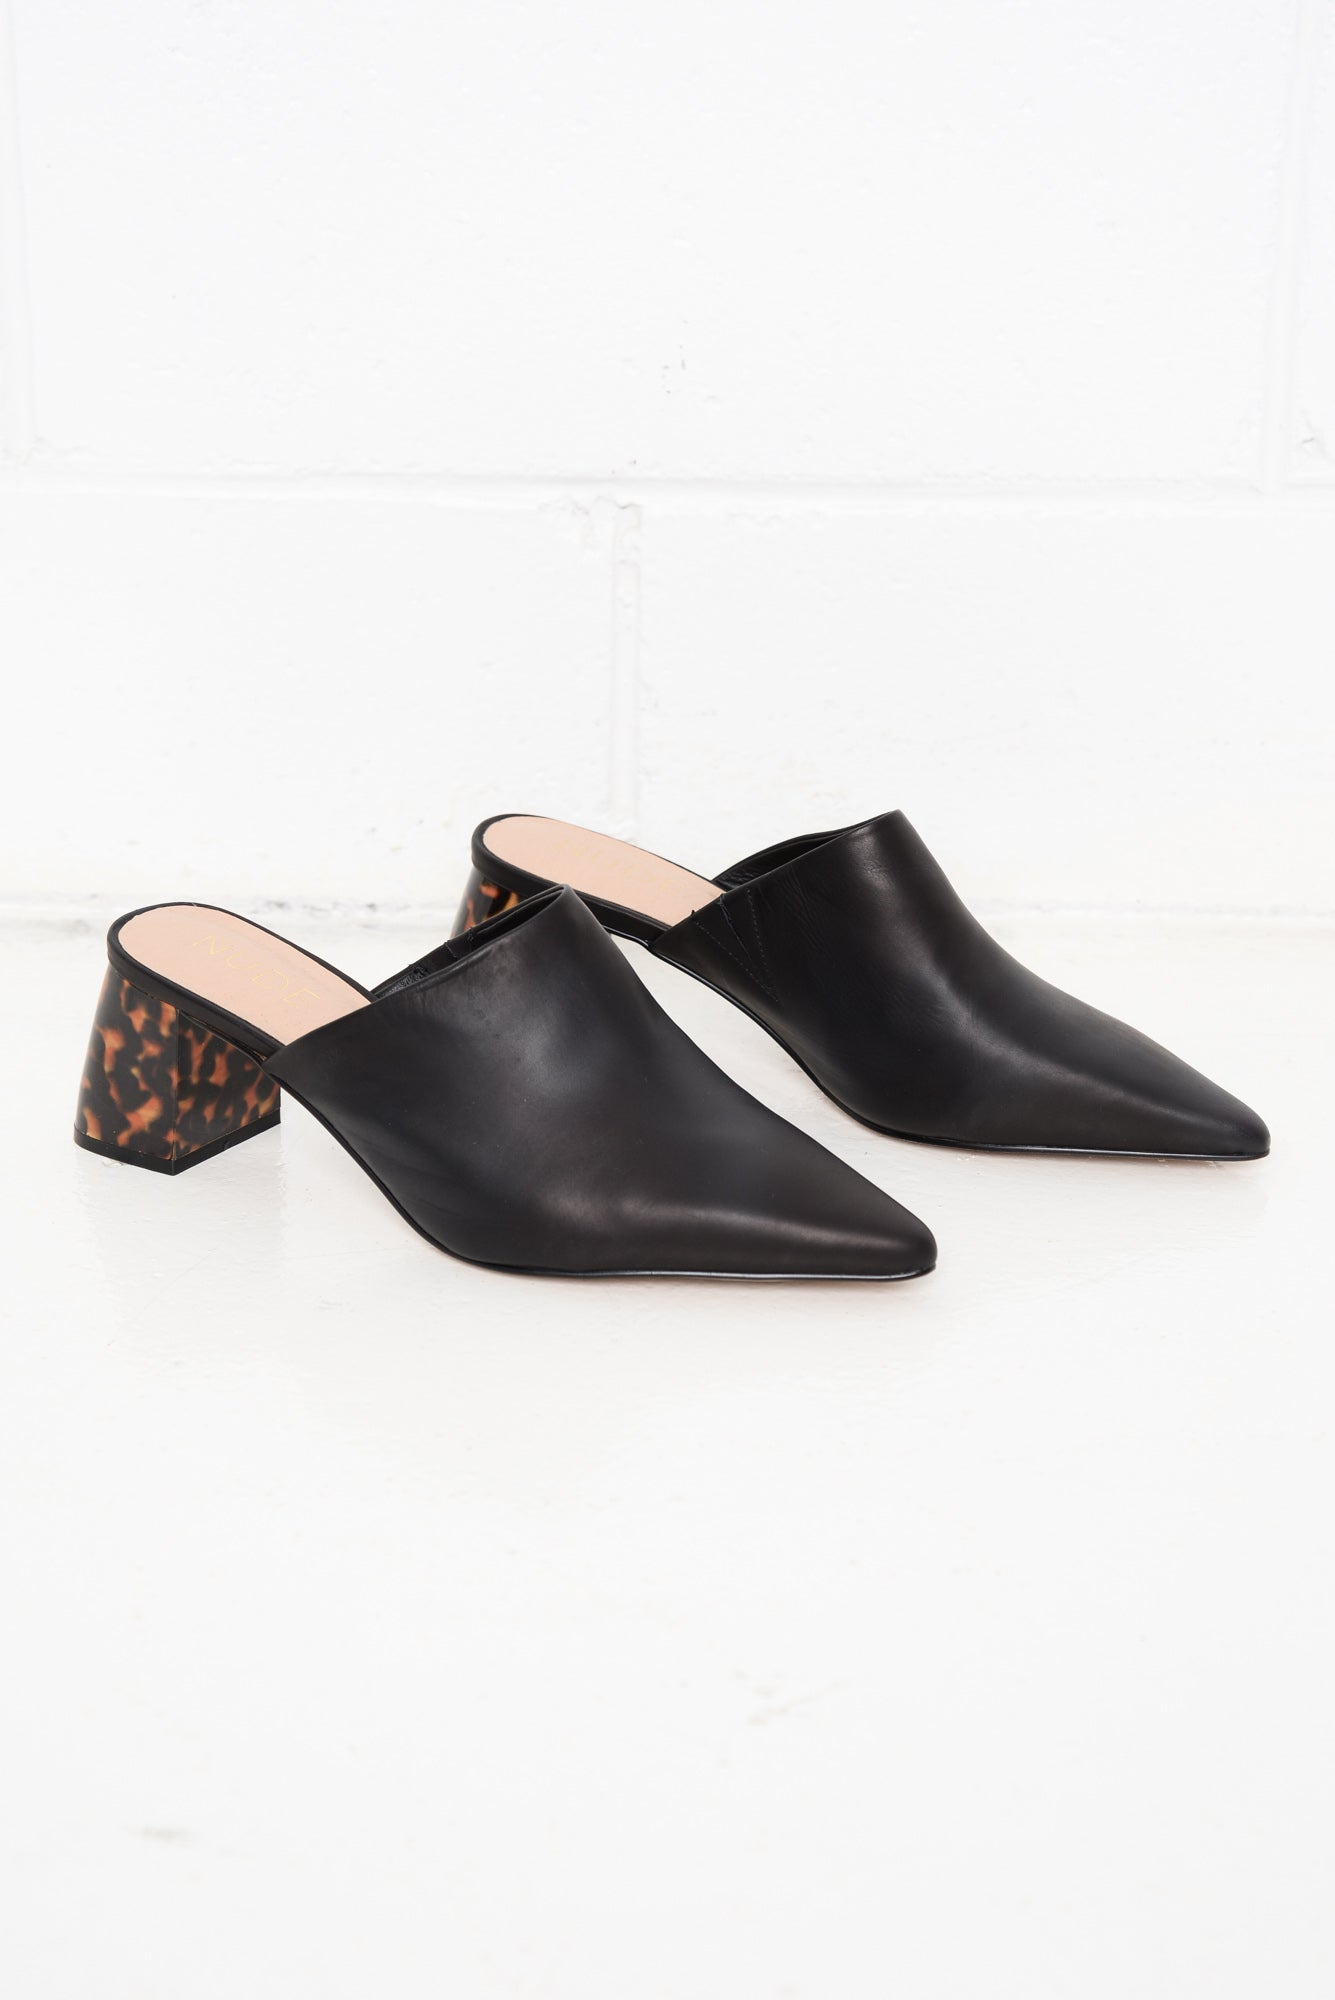 Mavis Black Leather Tortoiseshell Heel